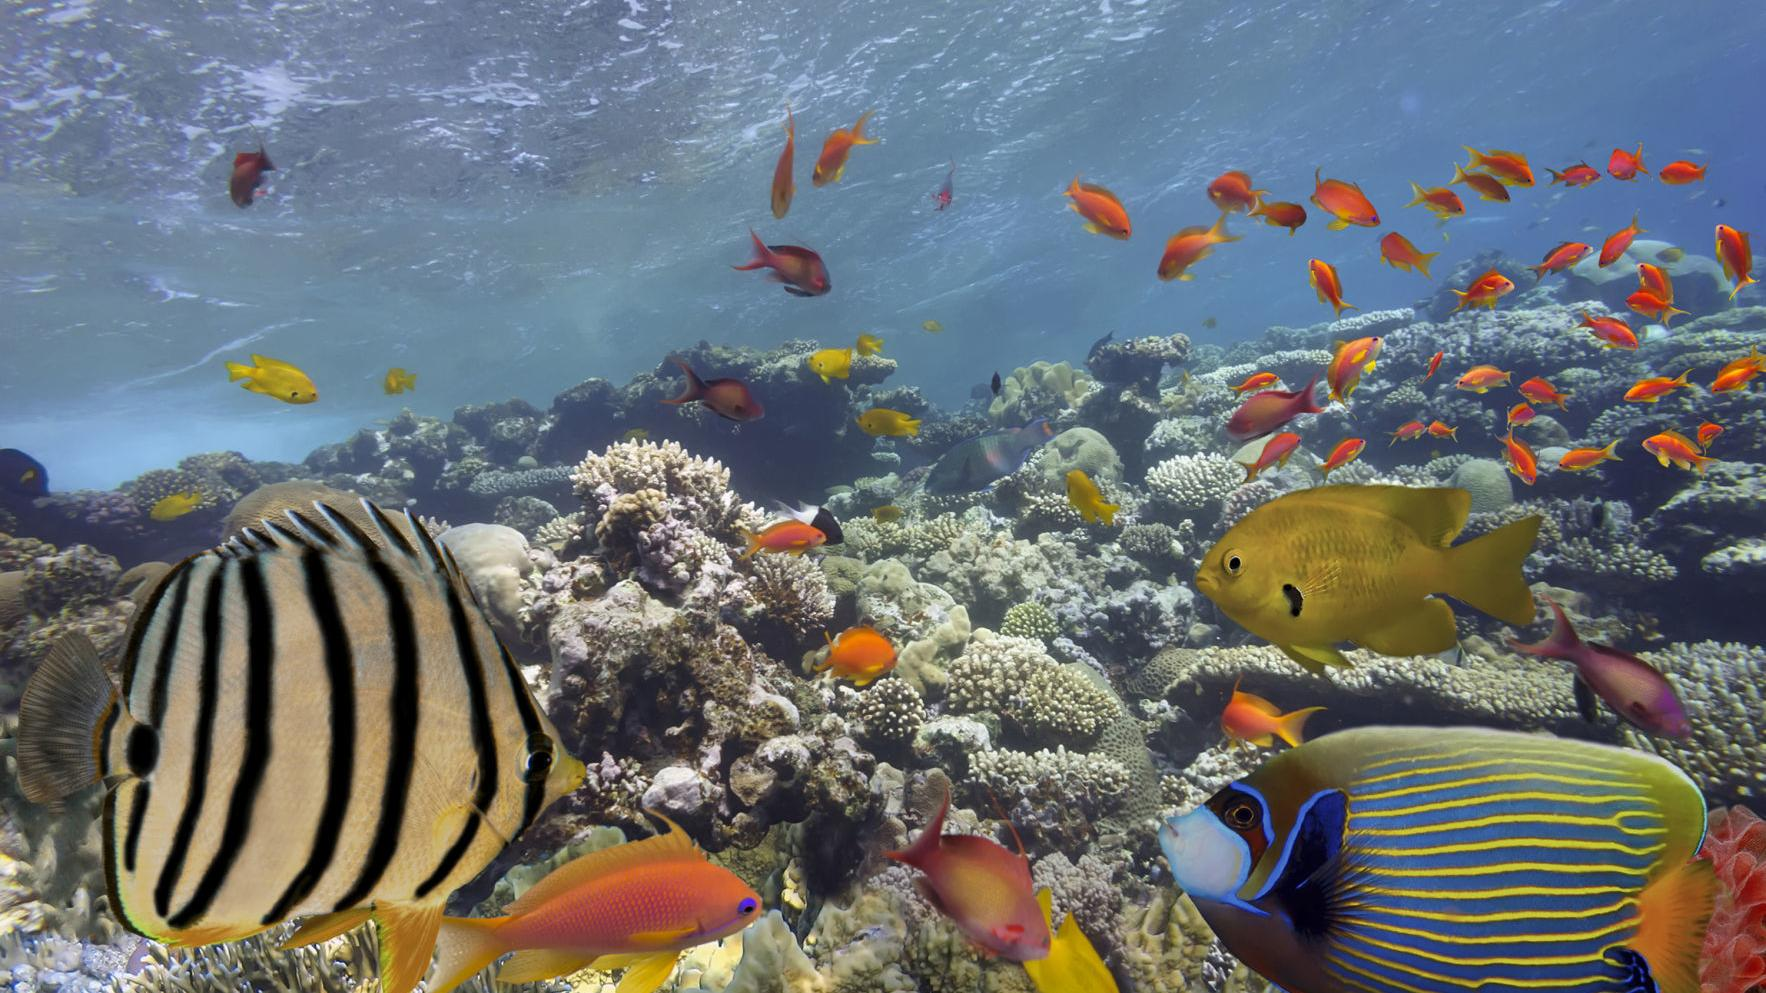 10 of the biggest threats to biodiversity, and why you should care